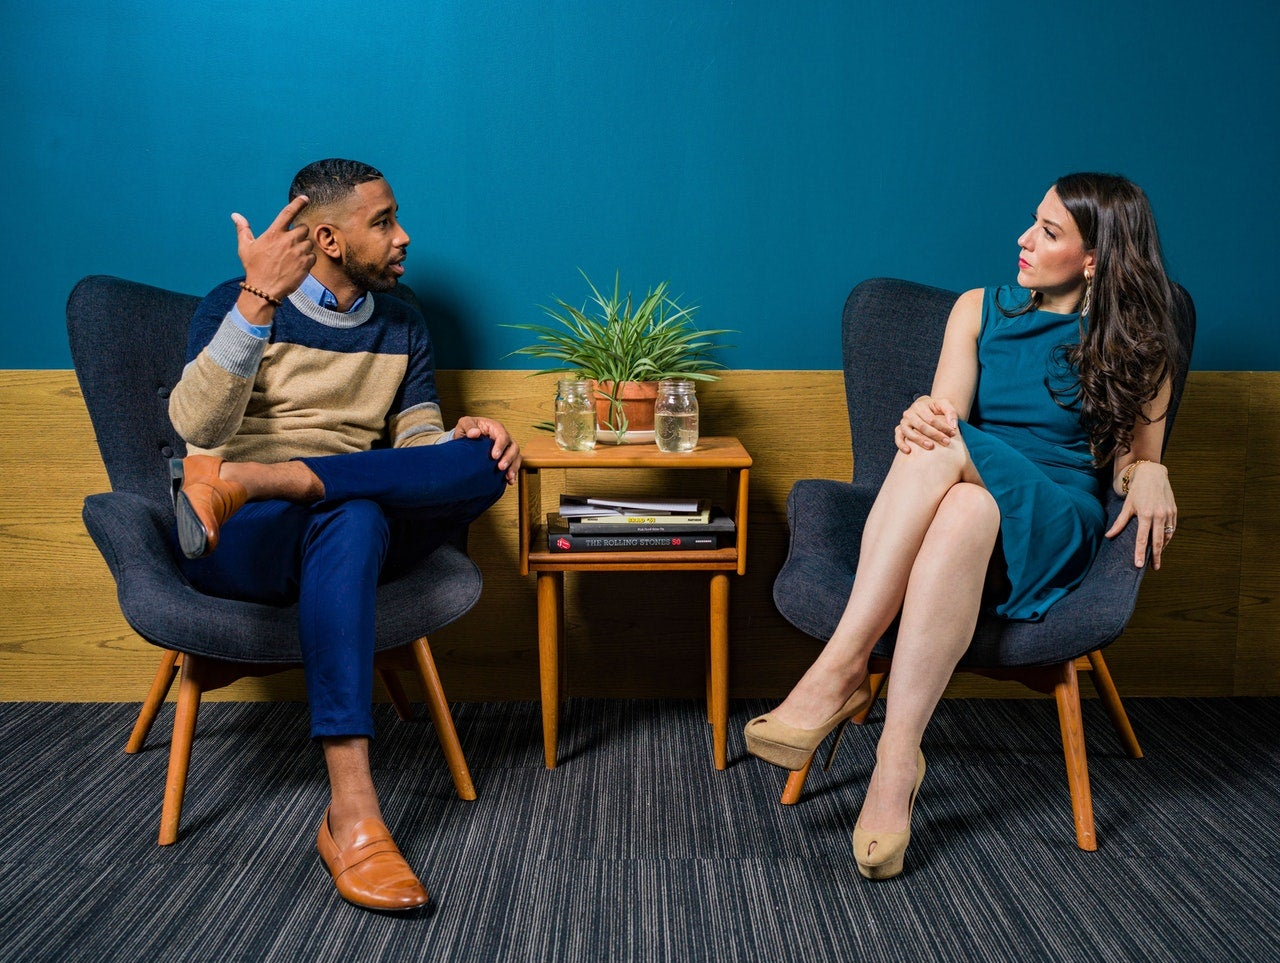 Two people sit in front of a bright blue wall having a discussion.